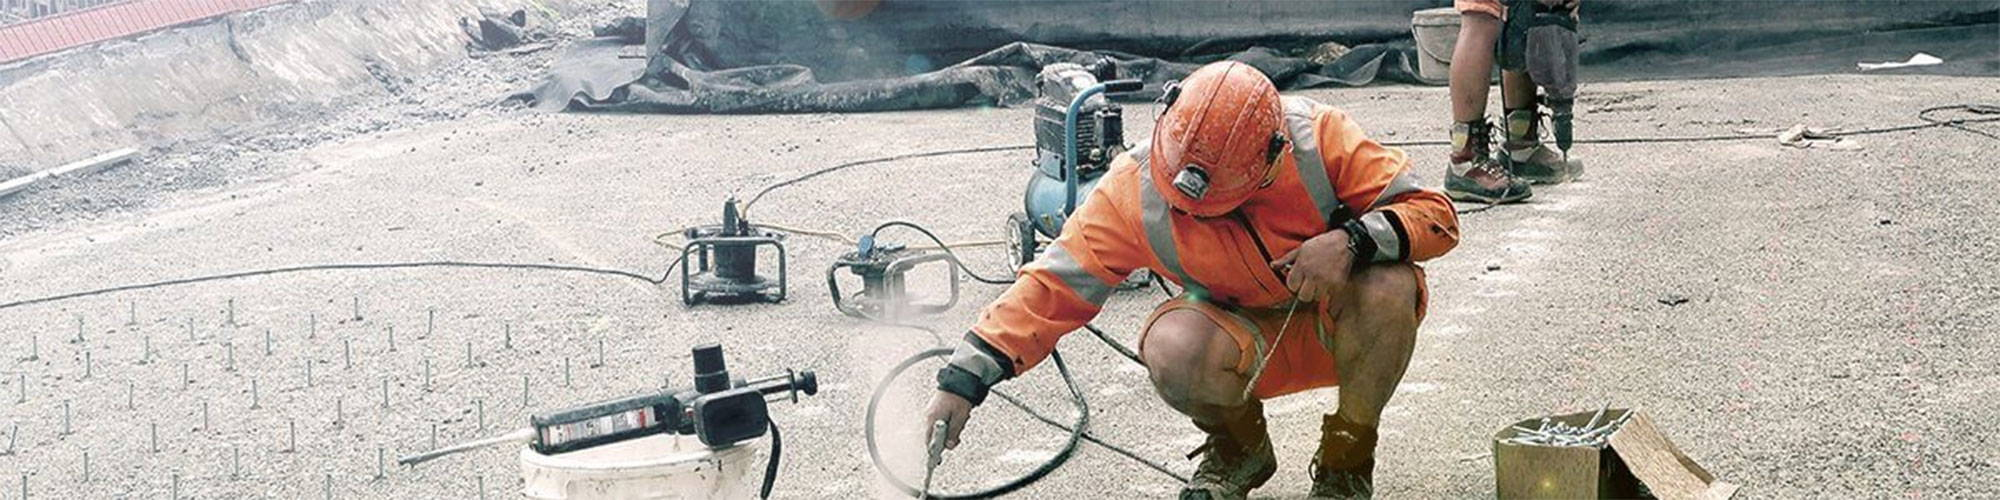 how to catch dust when drilling